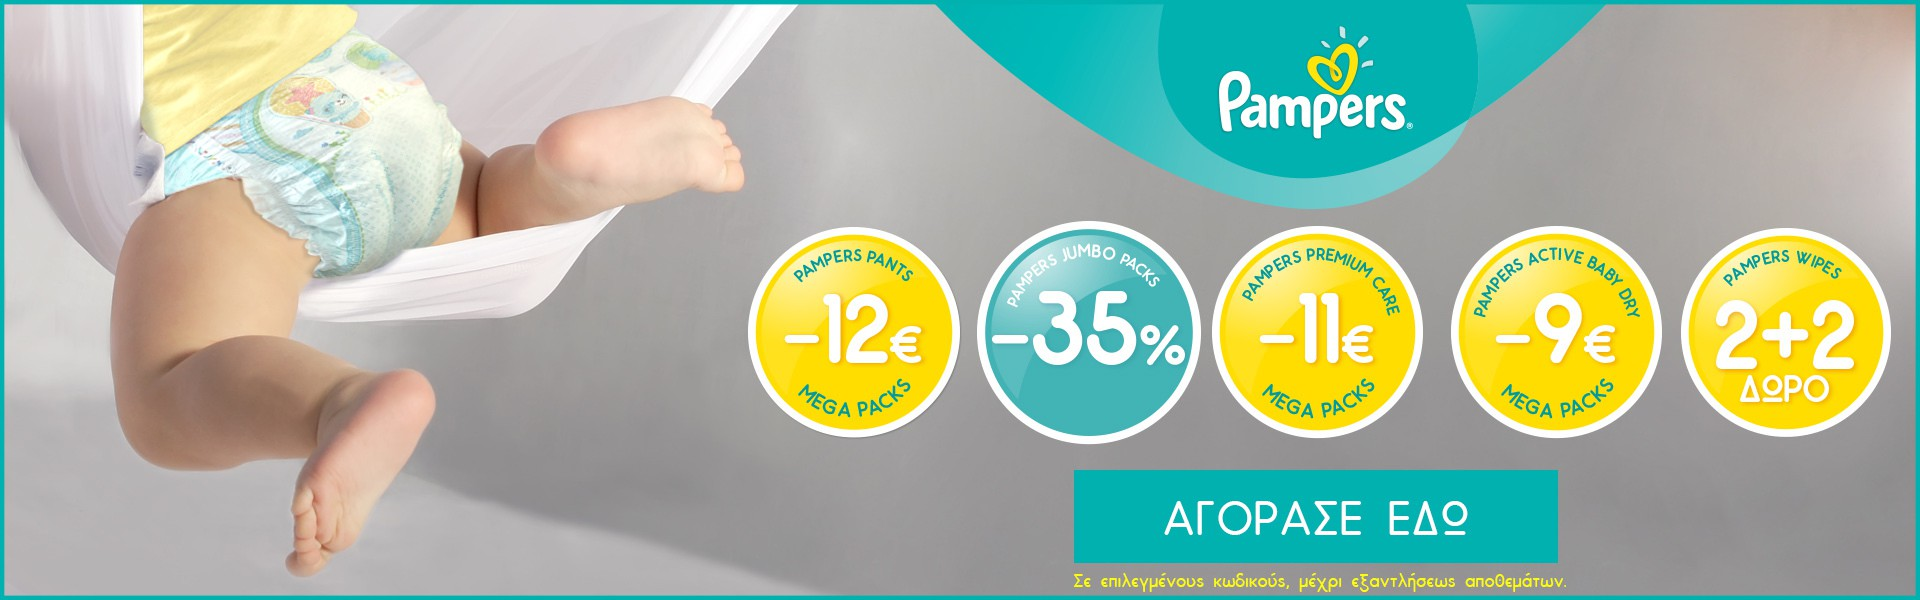 Pampres sept promo 1920x600new